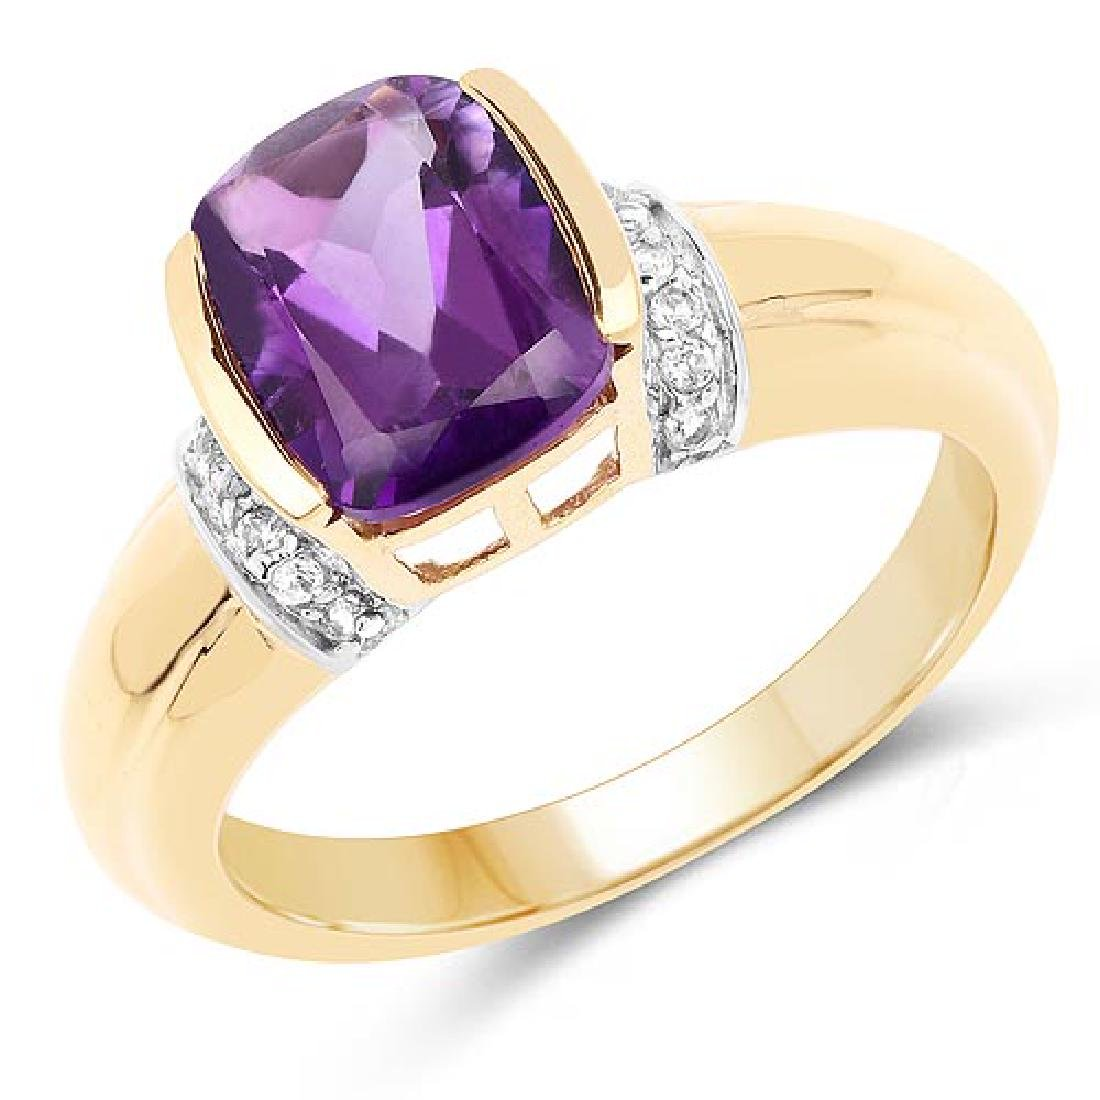 14K Yellow Gold Plated 1.52 Carat Genuine Amethyst and